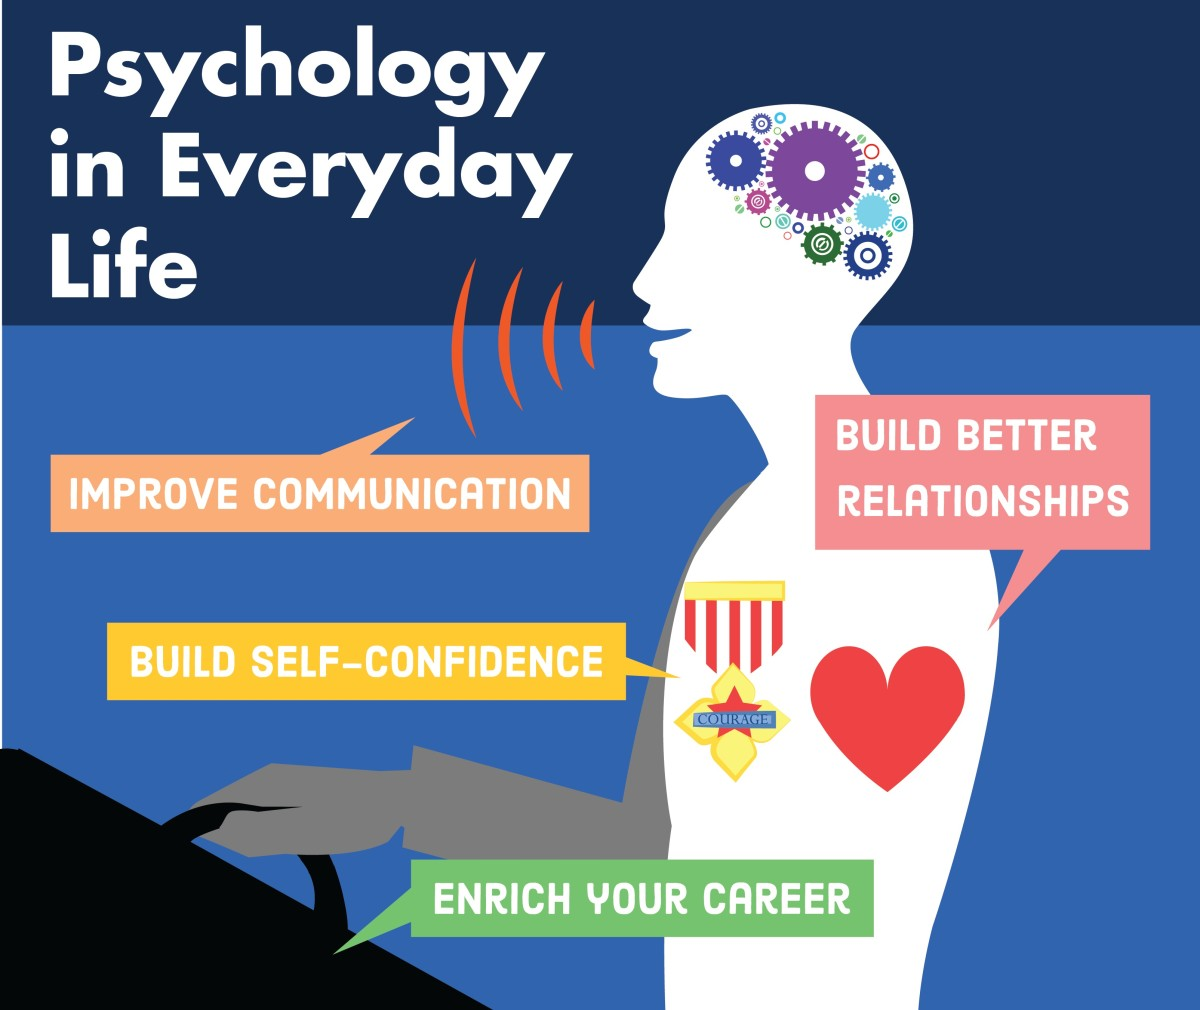 How psychology is used in everyday life.